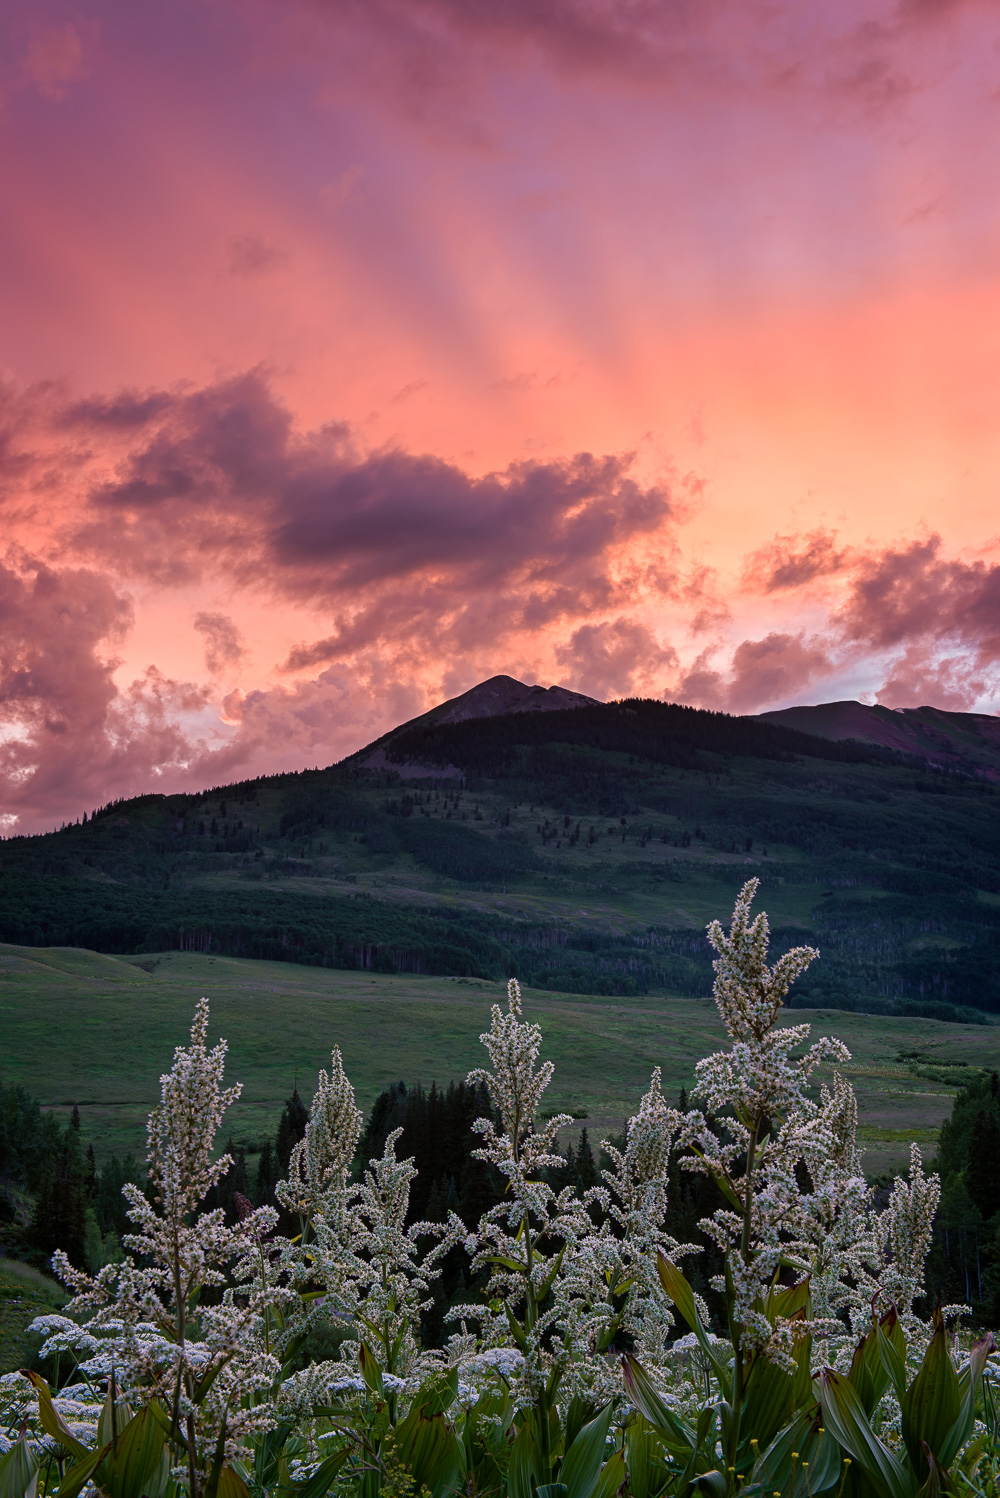 MAB-20150714-CO-CRESTED-BUTTE-GOTHIC-ROAD-SUNRISE-8109477.jpg